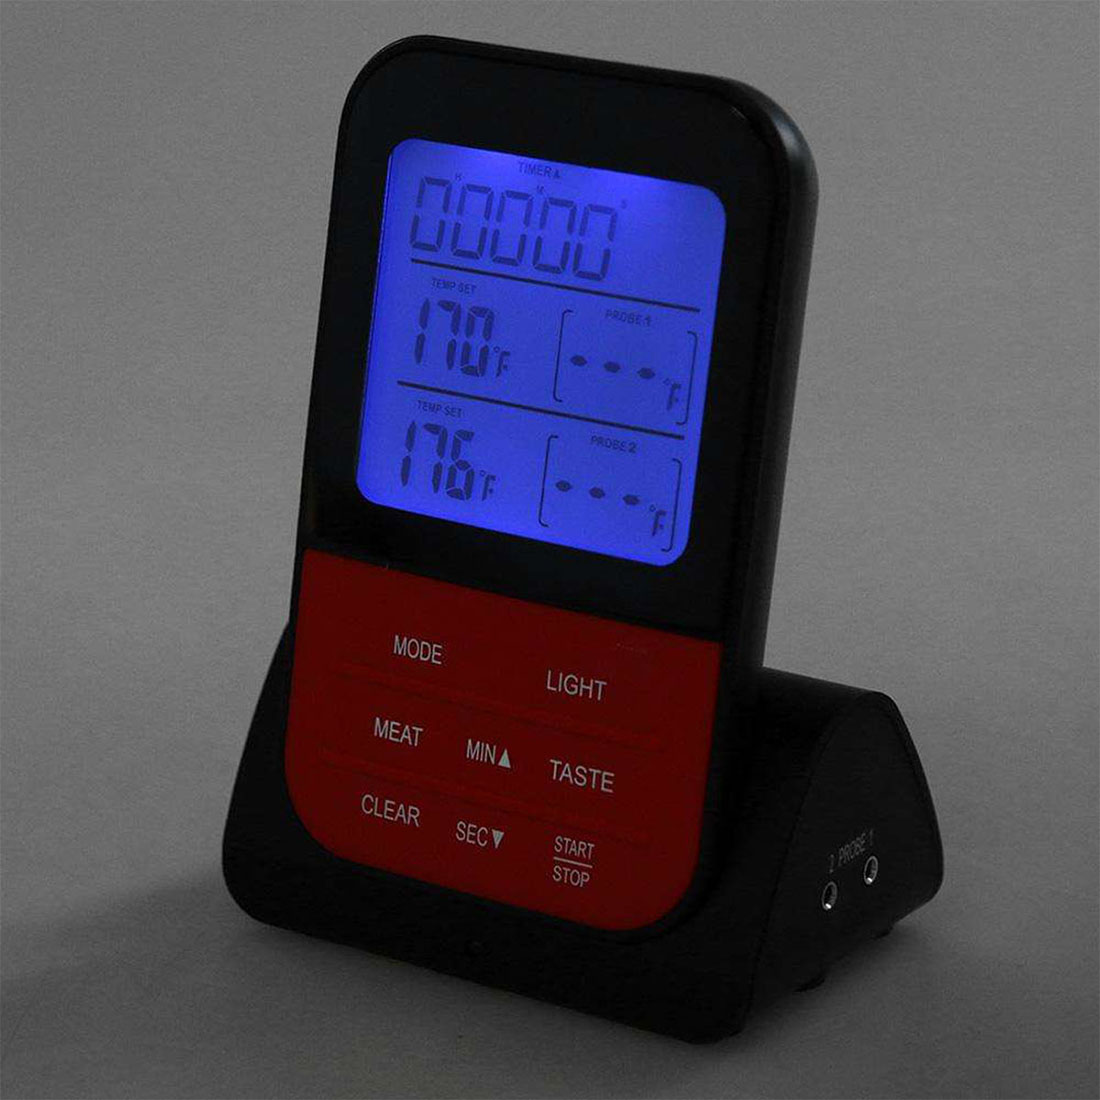 Wireless Waterproof BBQ Thermometer Digital Cooking Meat Food Oven Grilling Thermometer With Timer Function 20 250C